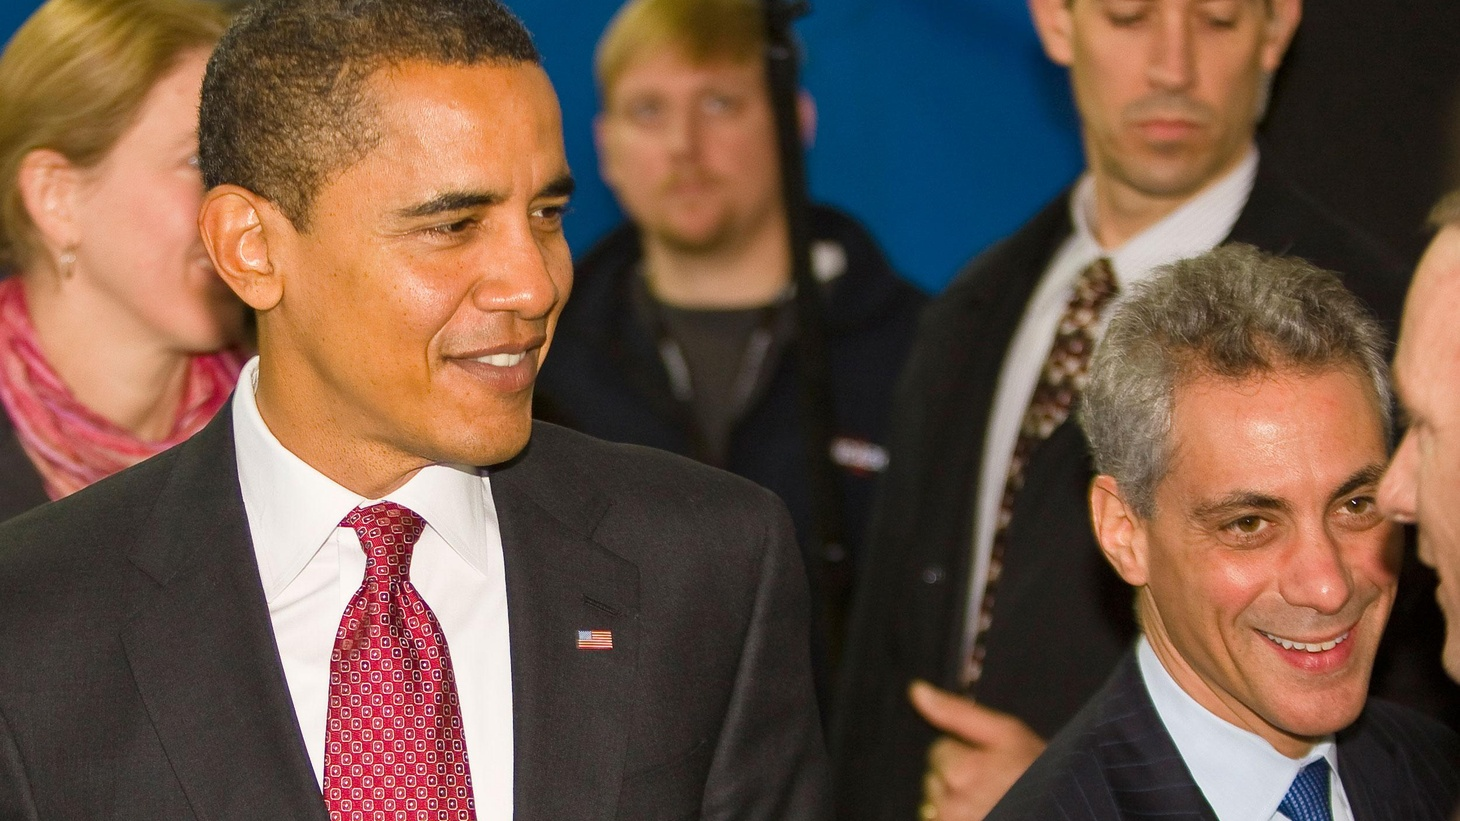 Chief of Staff Rahm Emanuel is expected to leave the White House tomorrow to campaign for Mayor of Chicago. Other key aides are departing as well. What will that mean for the Obama Administration, relations with Congress and public perception? Also, McDonald's balks at healthcare reform, and the world's top cyclist and performance enhancing drugs.